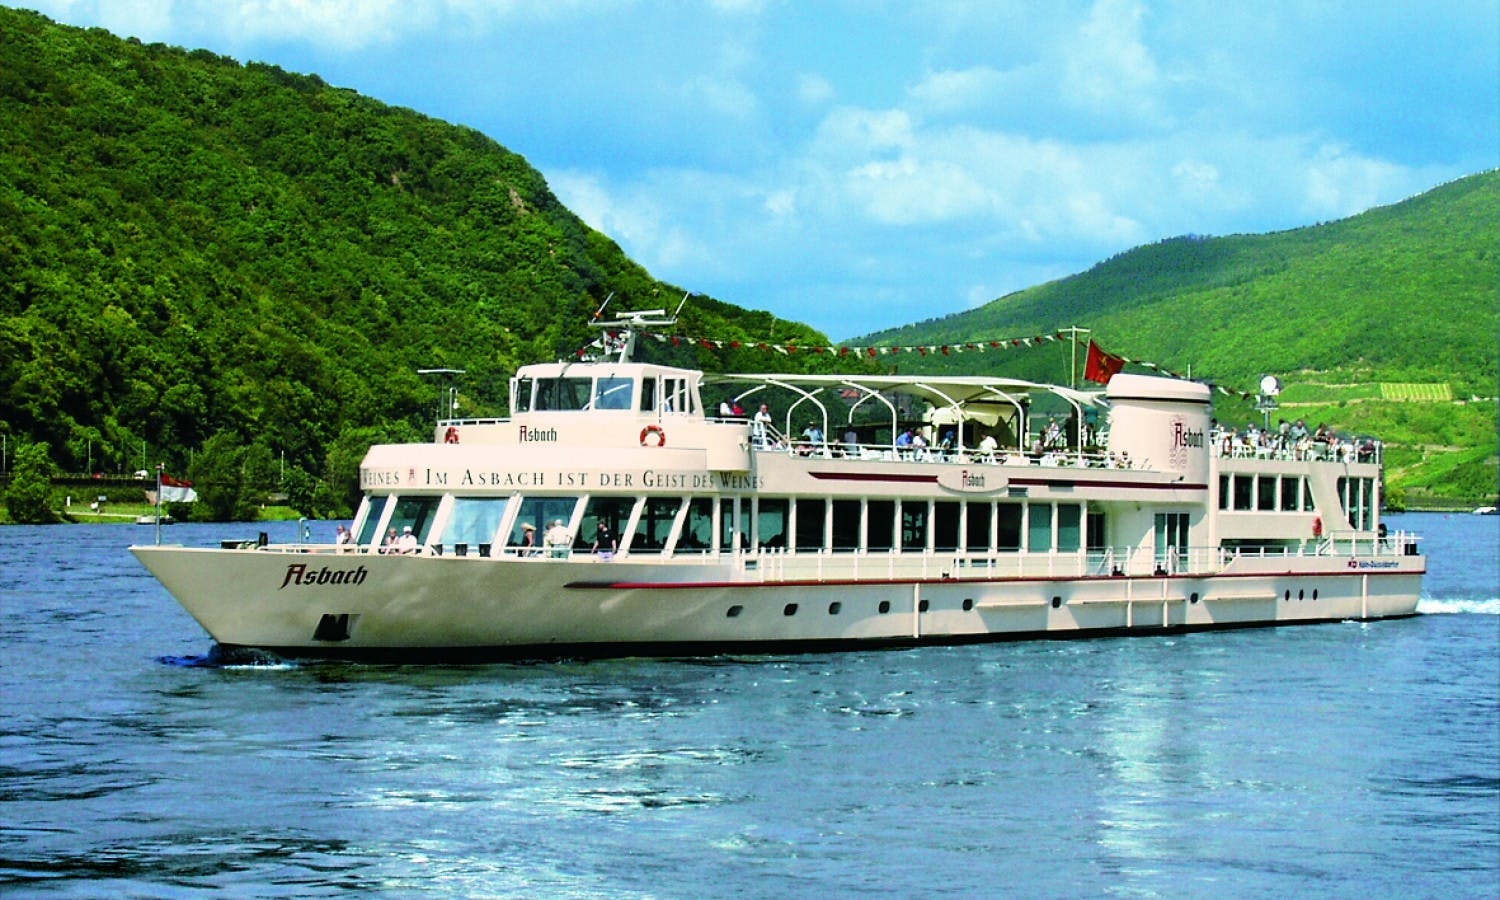 RhinePass: hop-on, hop-off one-day river cruise